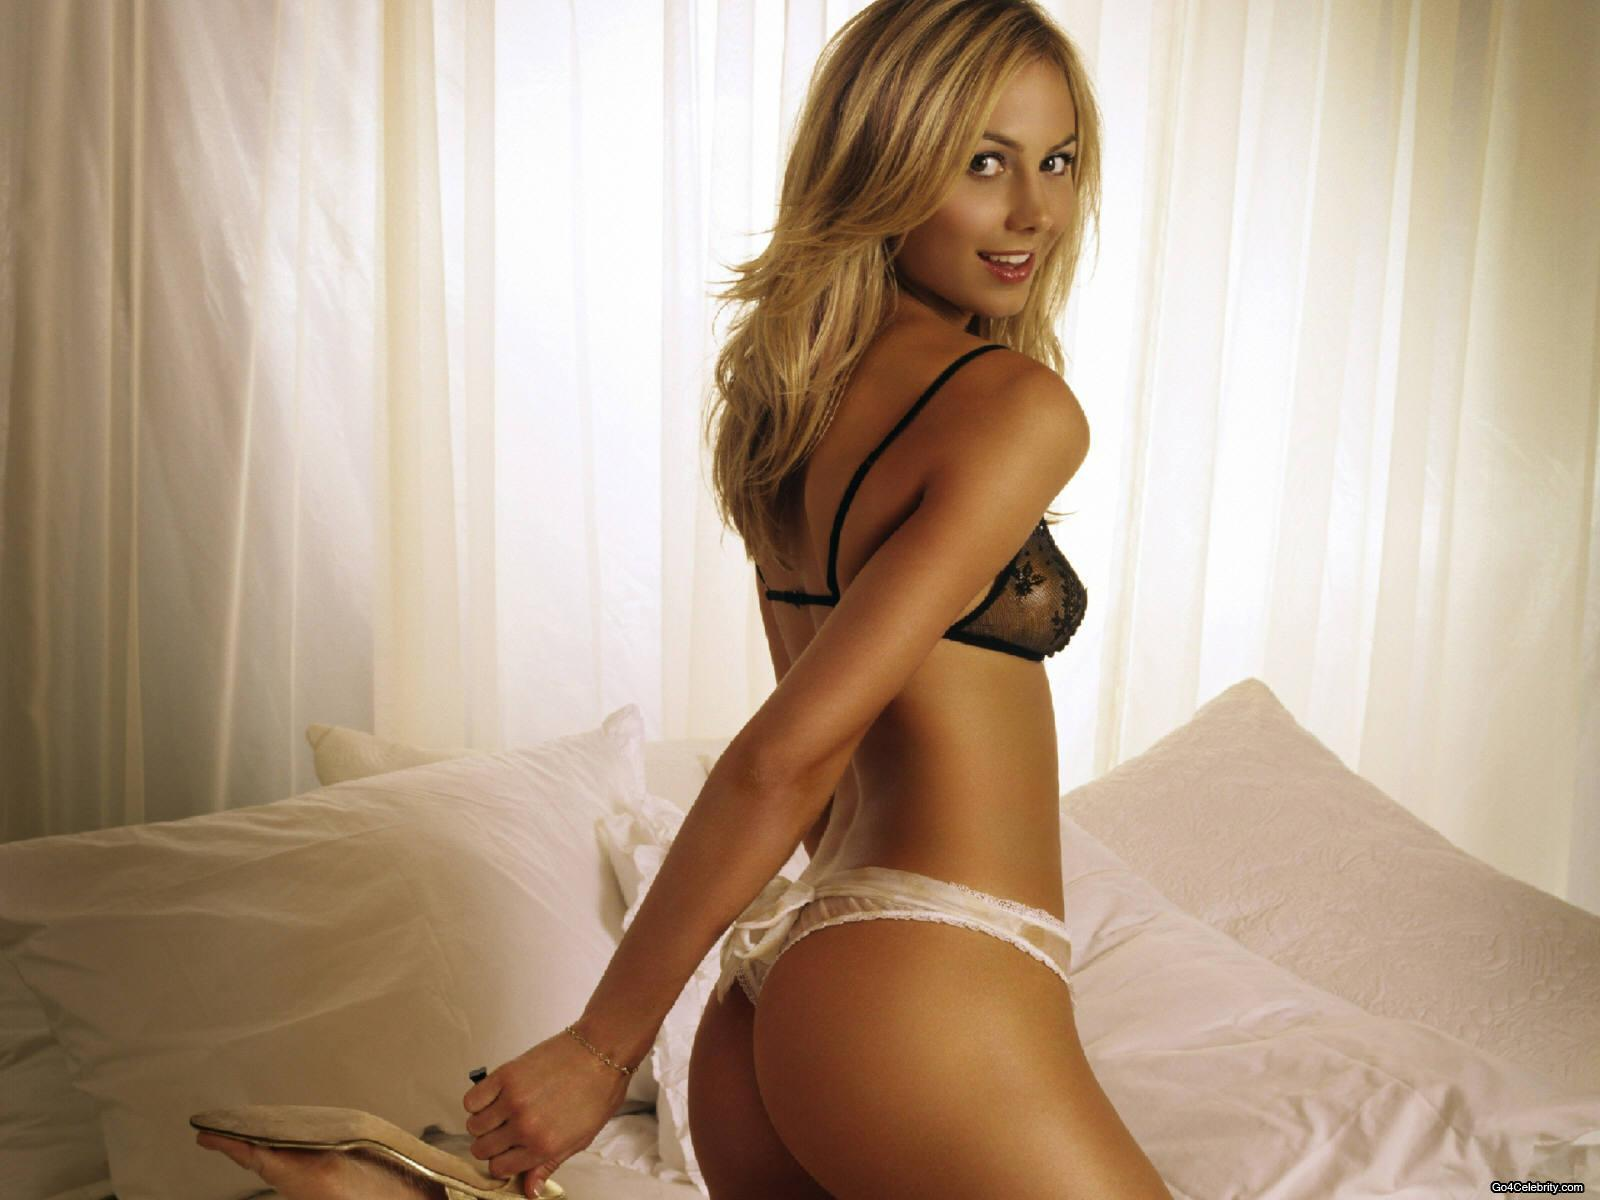 Sexy-stacy-keibler-photos-and-HD-wallpapers-1adt.com-13